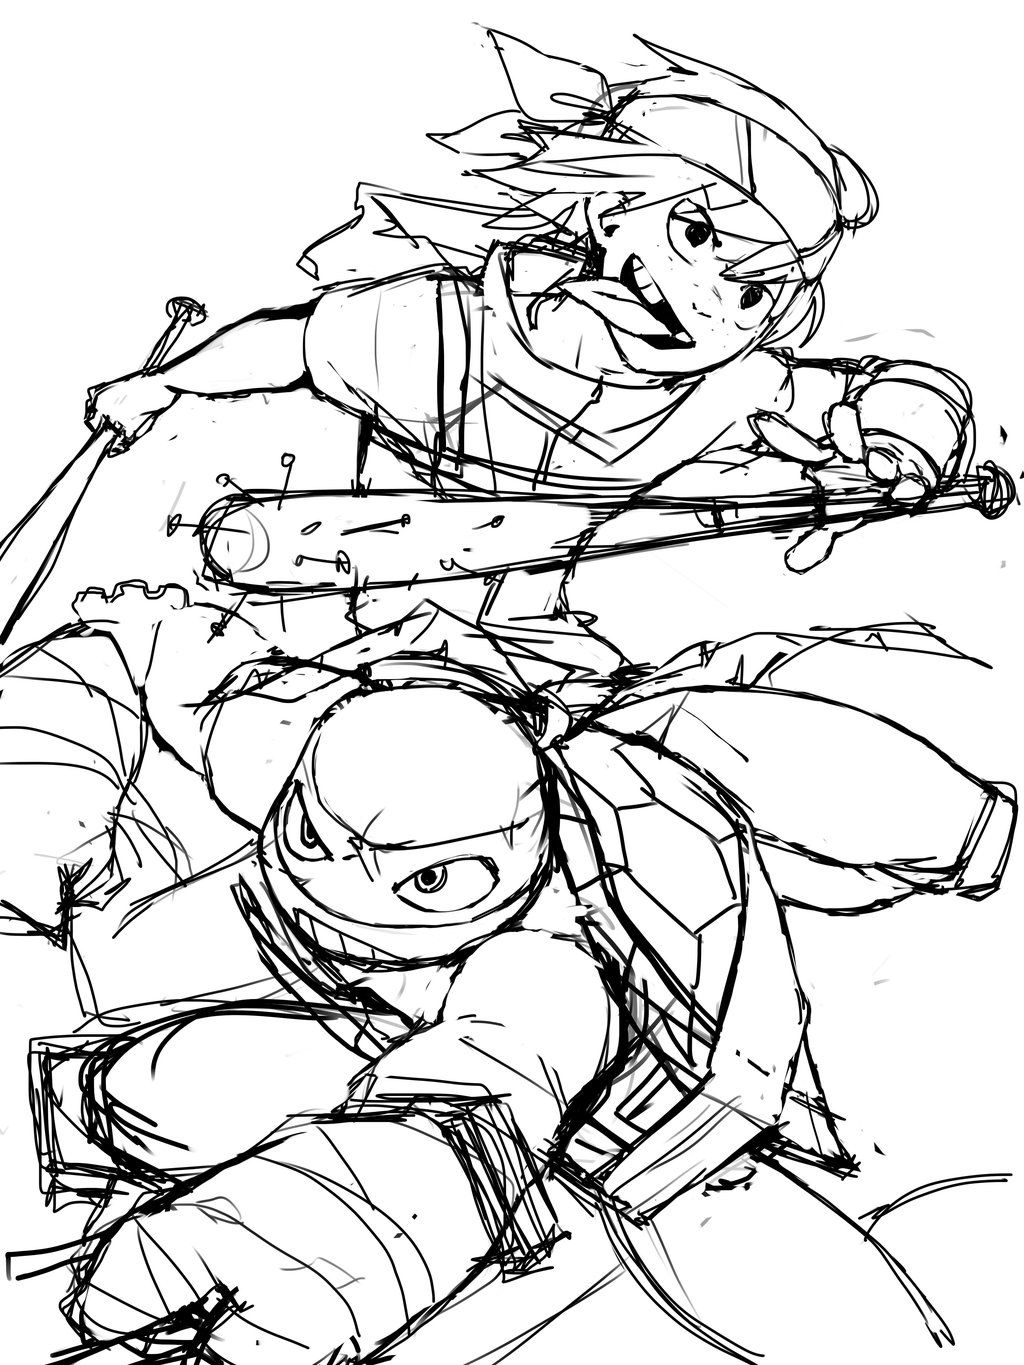 tmnt 2012 coloring pages tmnt teenage mutant ninja turtles by robpaolucci on deviantart pages 2012 tmnt coloring